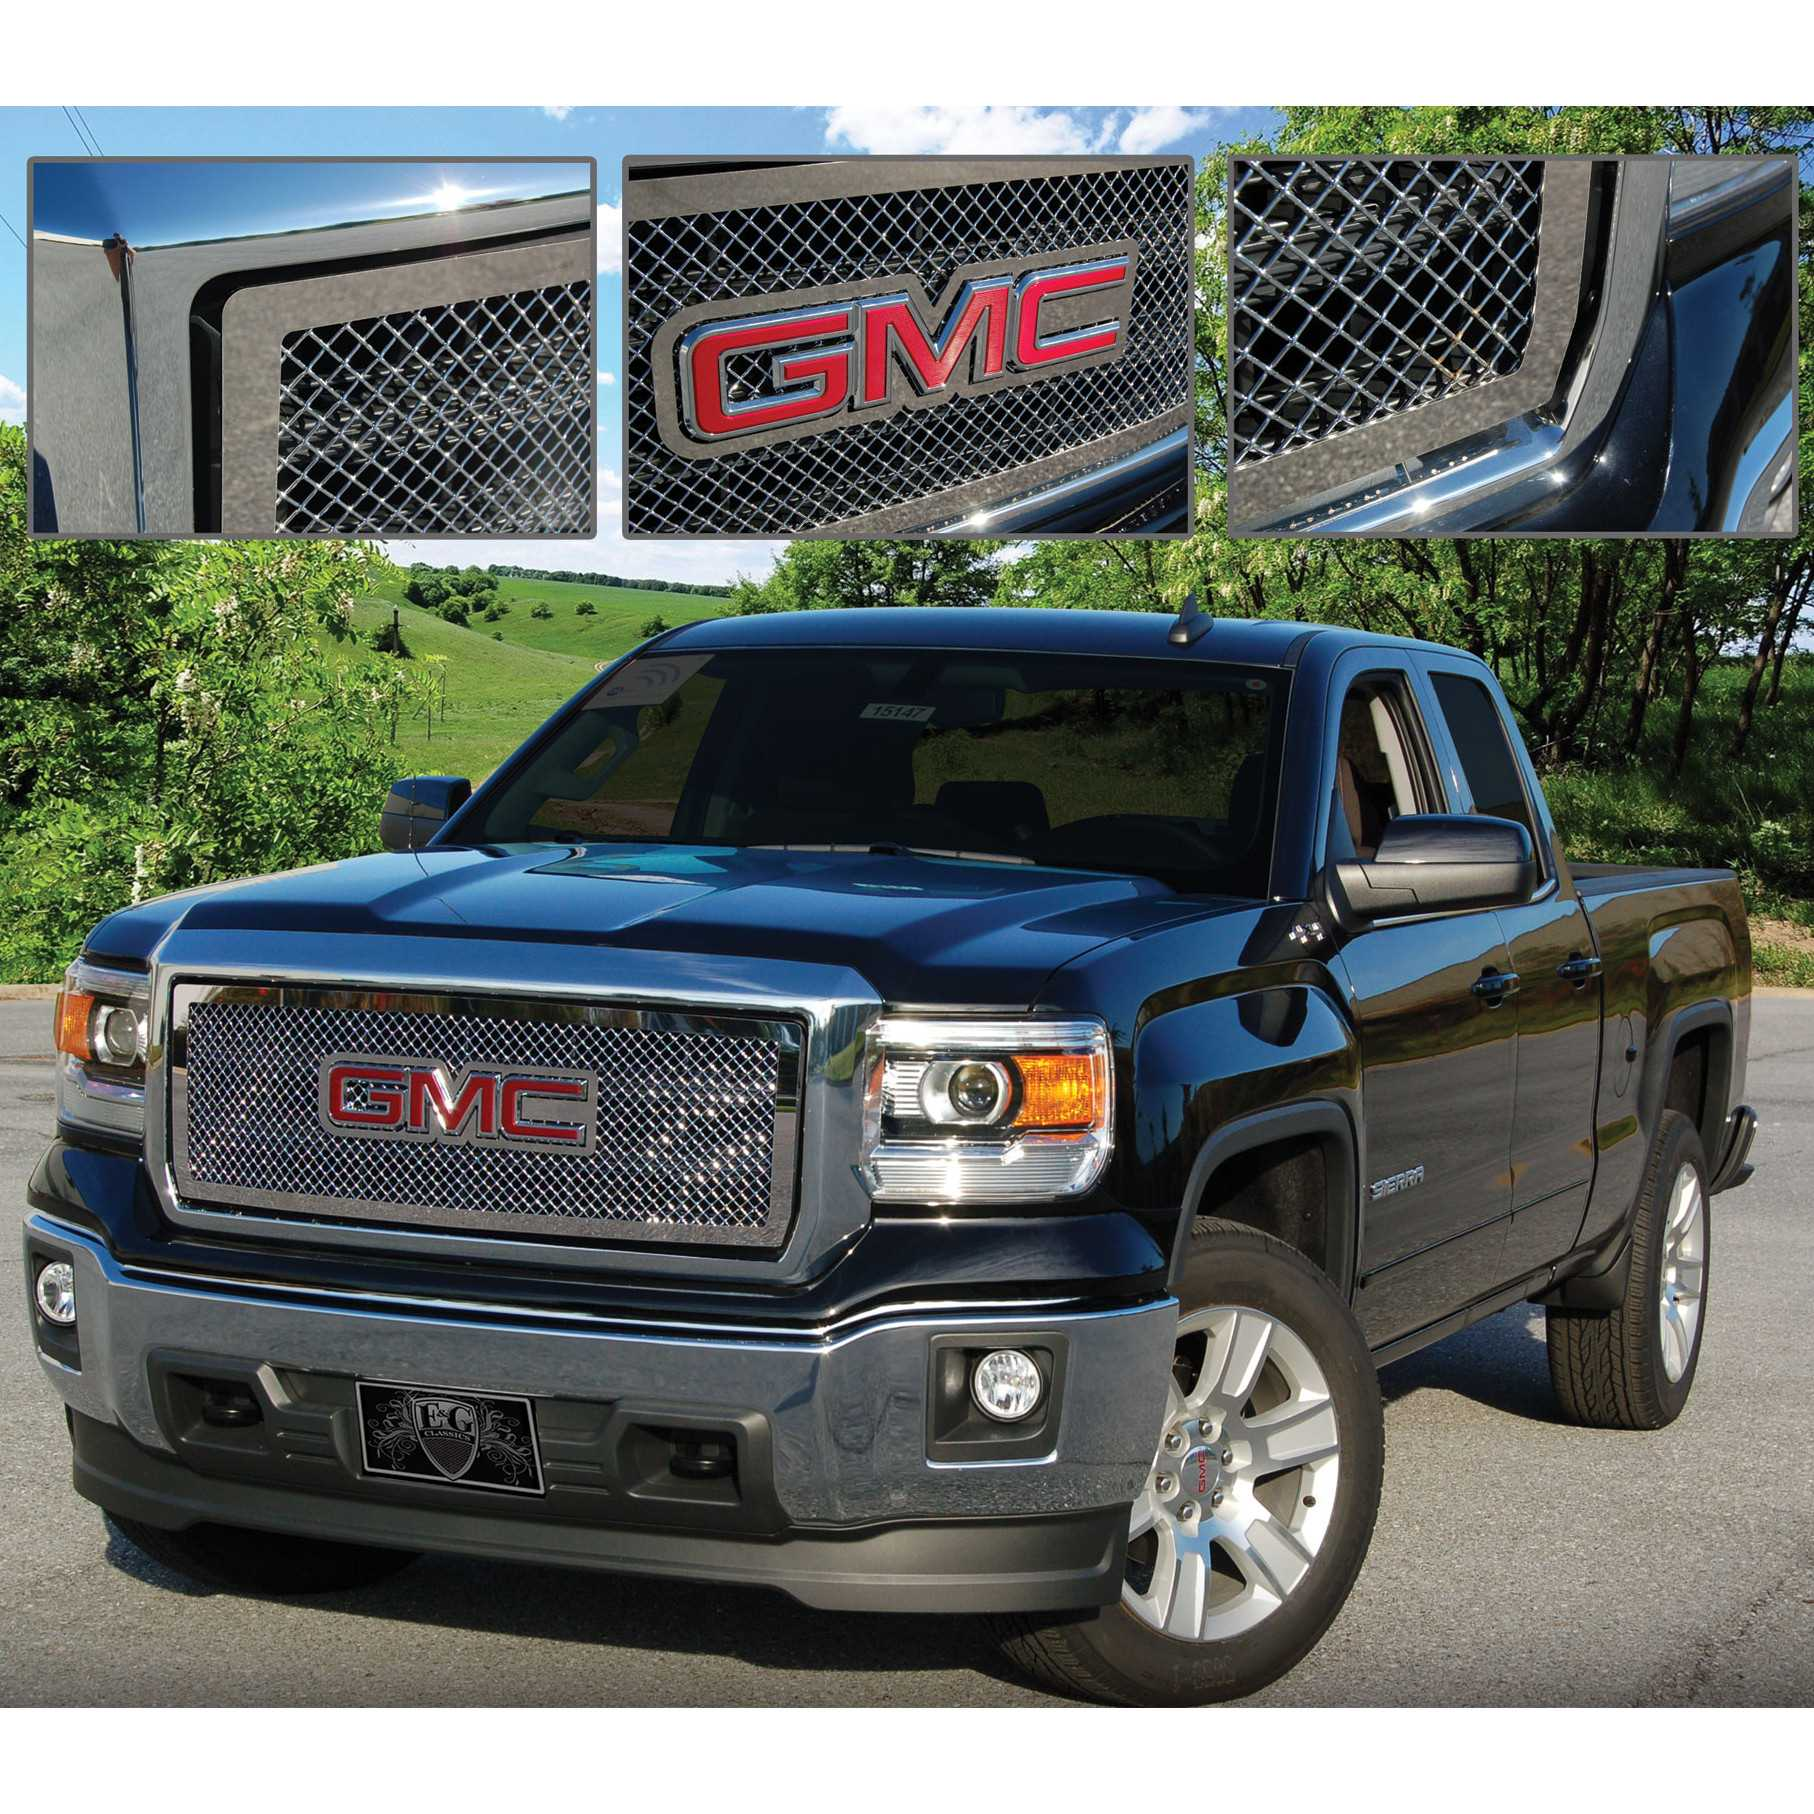 image gmc gallery truck accessories canyon photo spied best denali grille